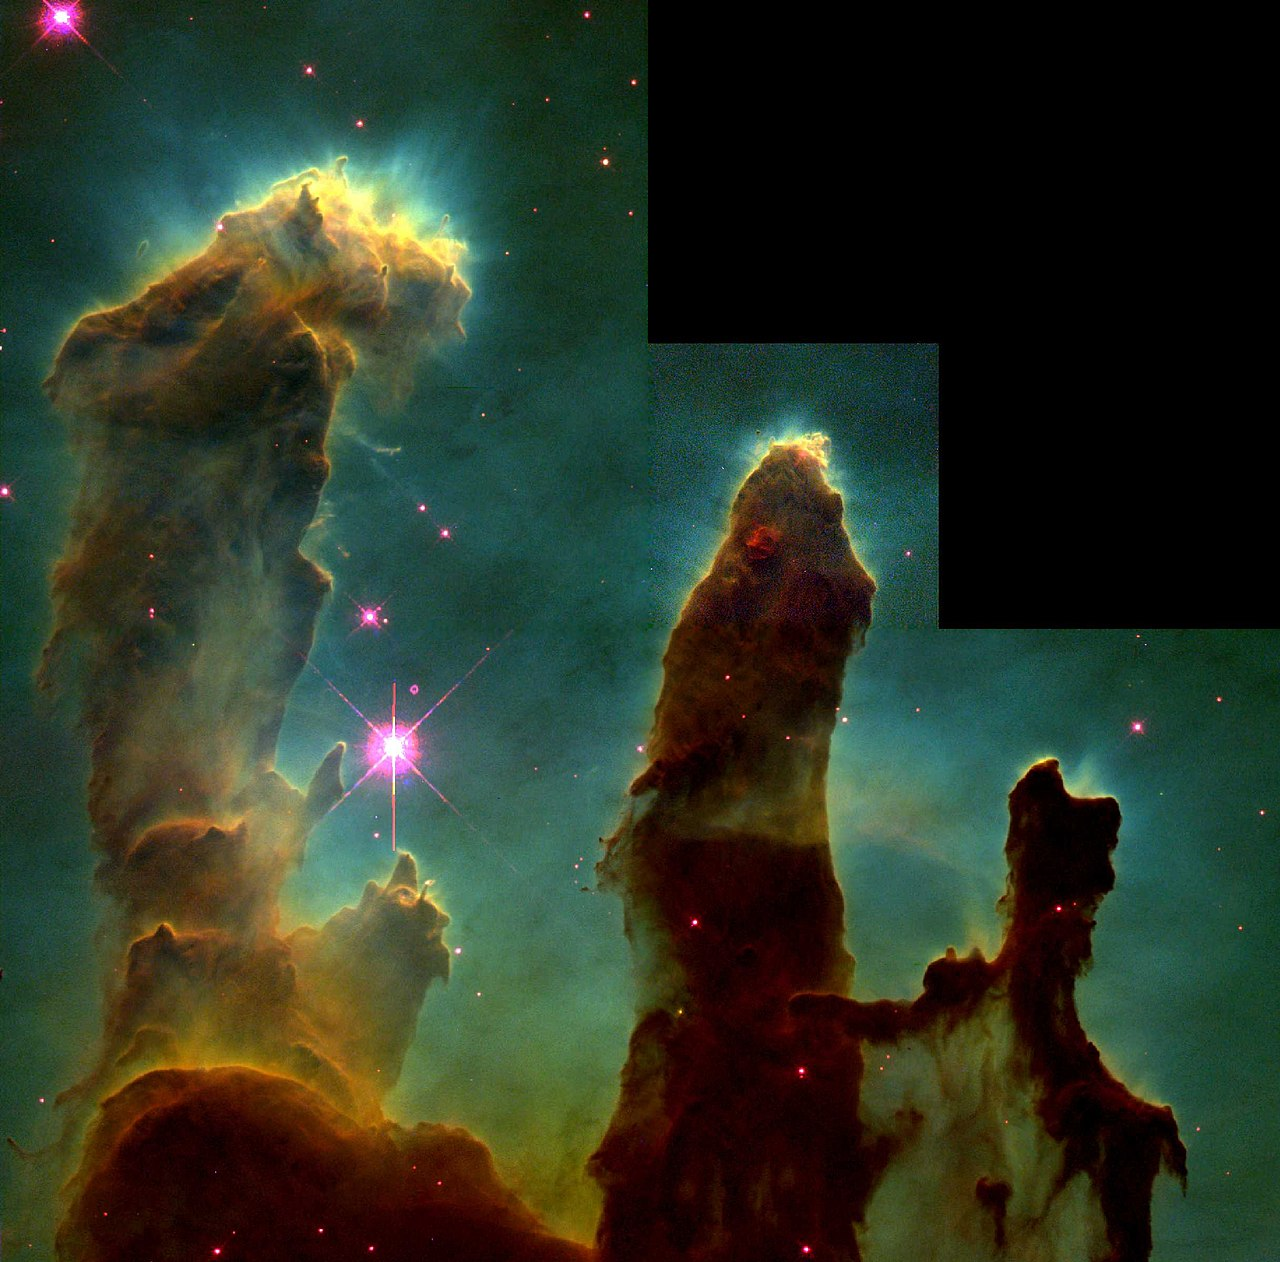 Hubble telescope image known as Pillars of Creation, where stars are forming in the Eagle Nebula.